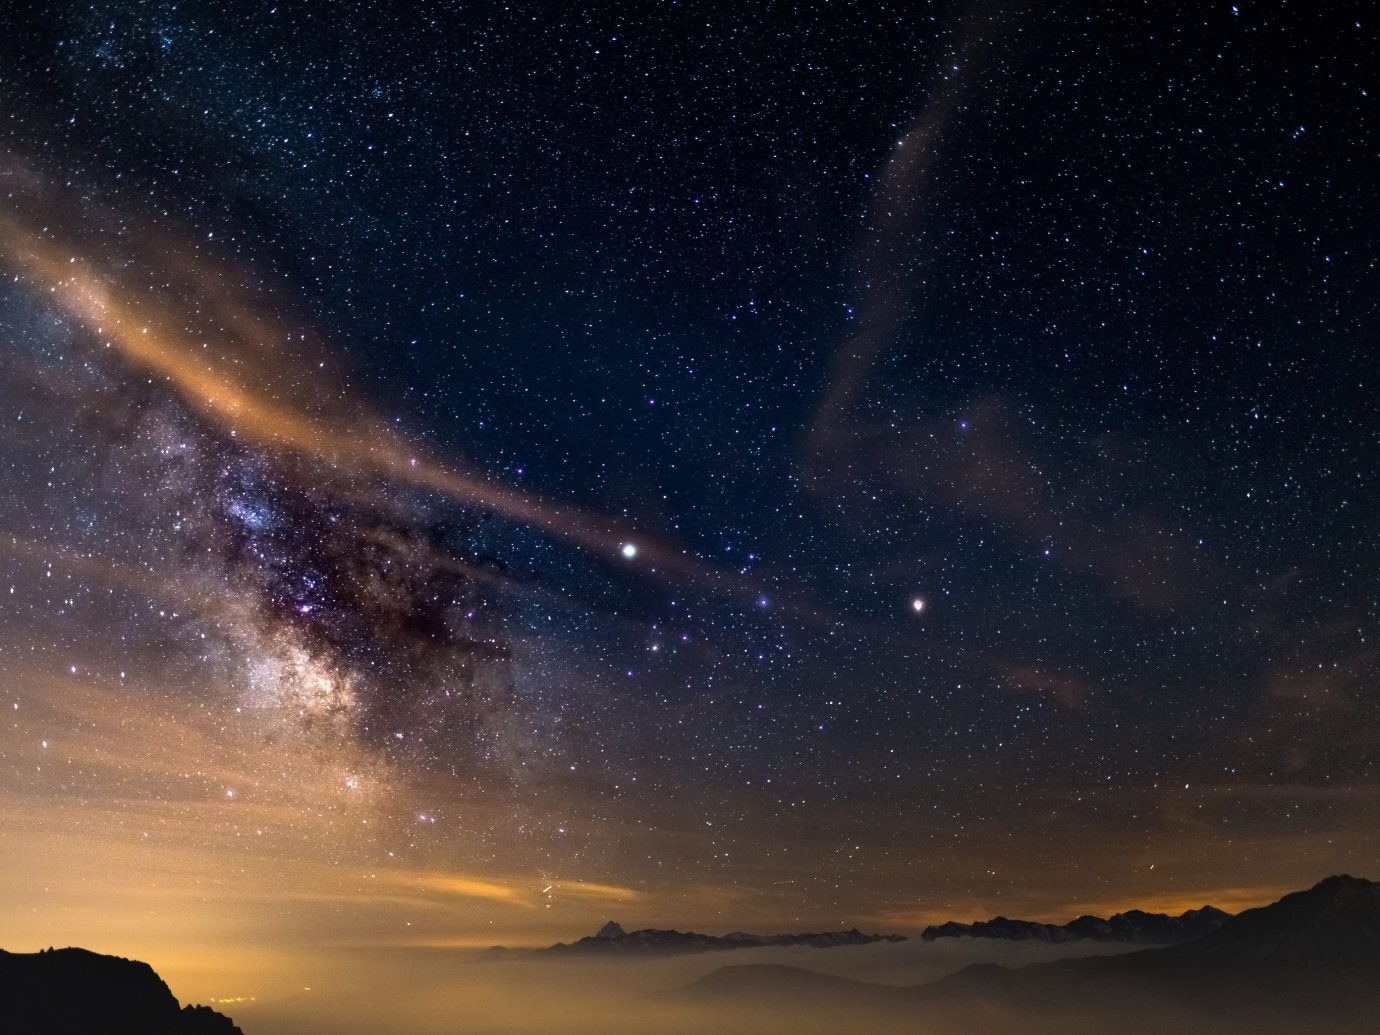 News sky galaxy astronomical object Nature night astronomy atmosphere star outer space spiral galaxy milky way space outdoor object Night Sky